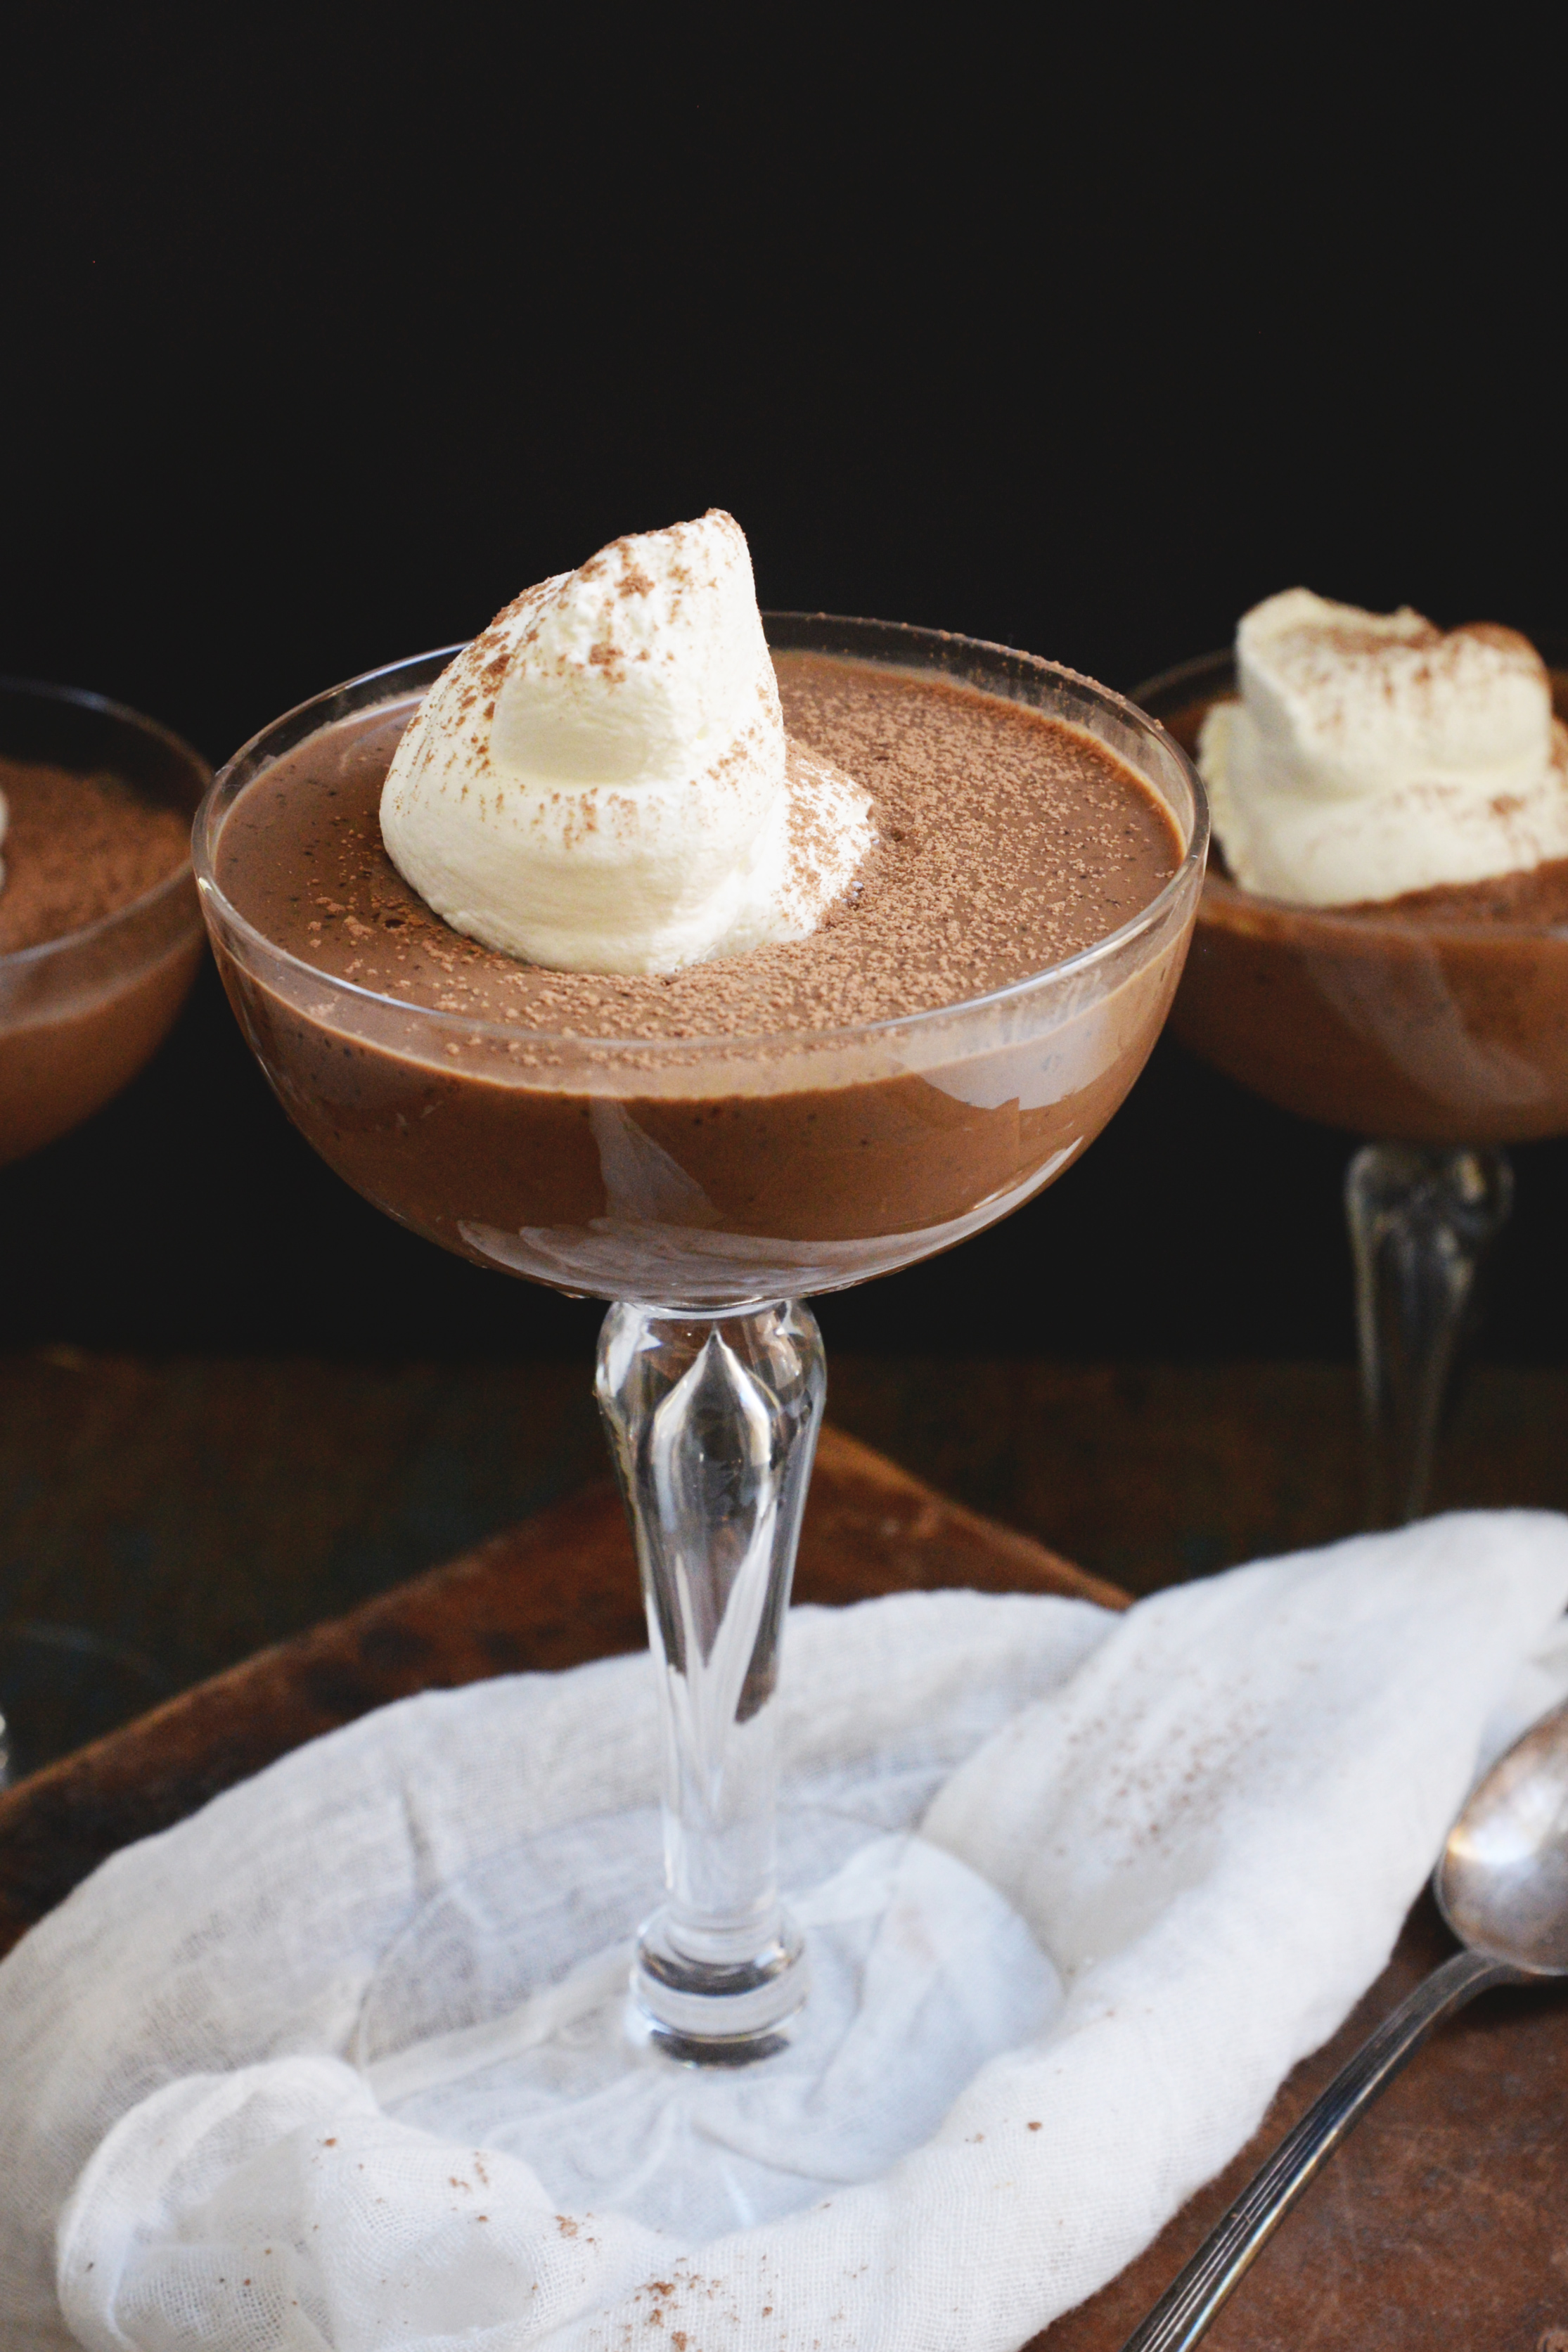 Low-Carb Chocolate Pudding Recipe-with whipped cream and cocoa powder.